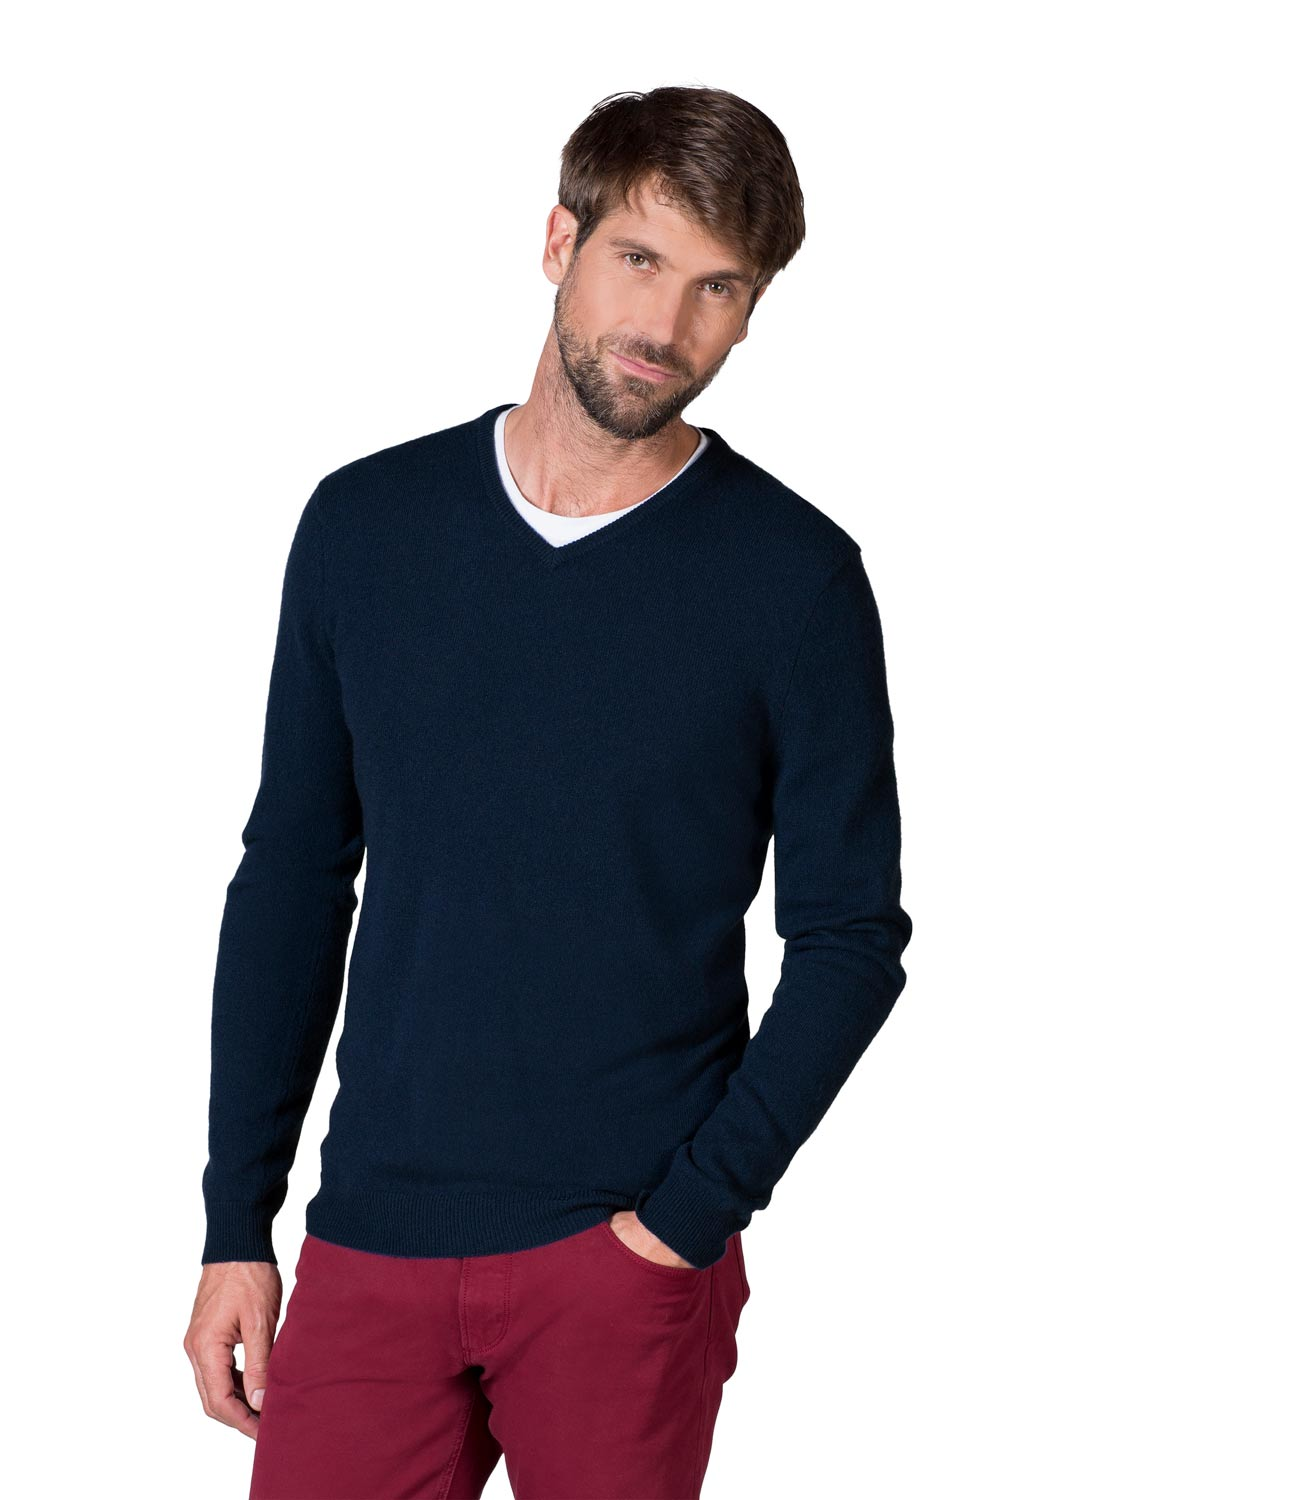 This ultrasoft sweater is knit from Italian cashmere and makes a luxurious addition to any man's wardrobe. Wear it with a shirt and tie over dark moto jeans for a modern casual look, or keep things polished by teaming it with flannel trousers and your favorite sport coat.